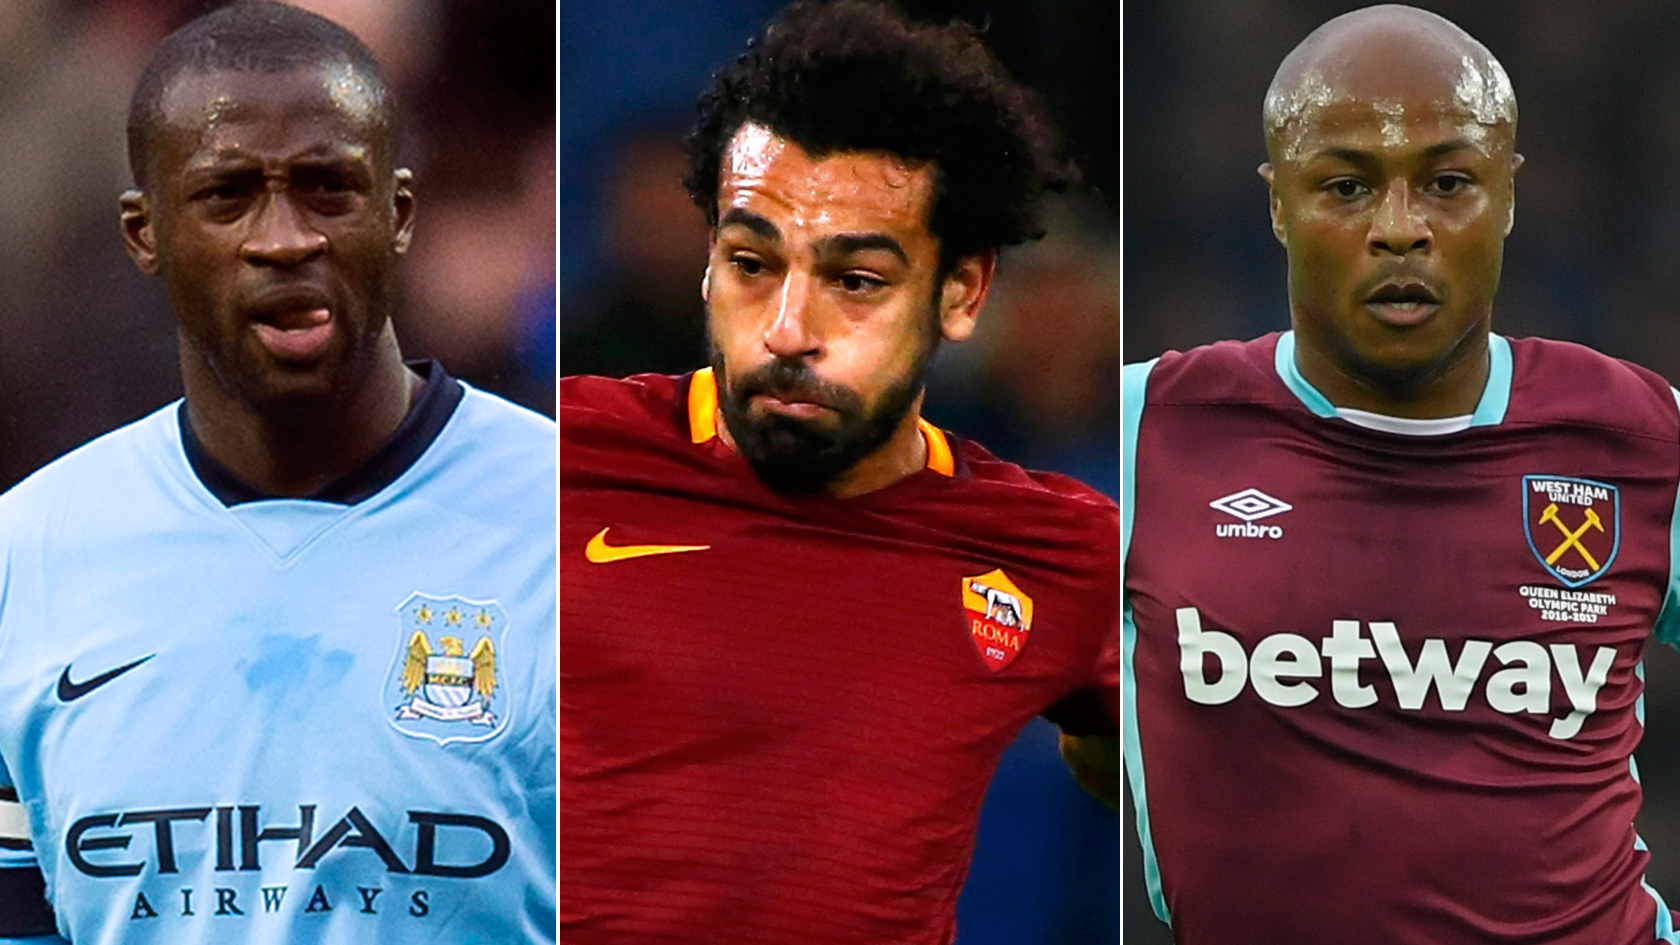 quidditch and pitch invaders sport quiz of the week bbc sport football which of these players is not on the list for bbc african footballer of the year 2016